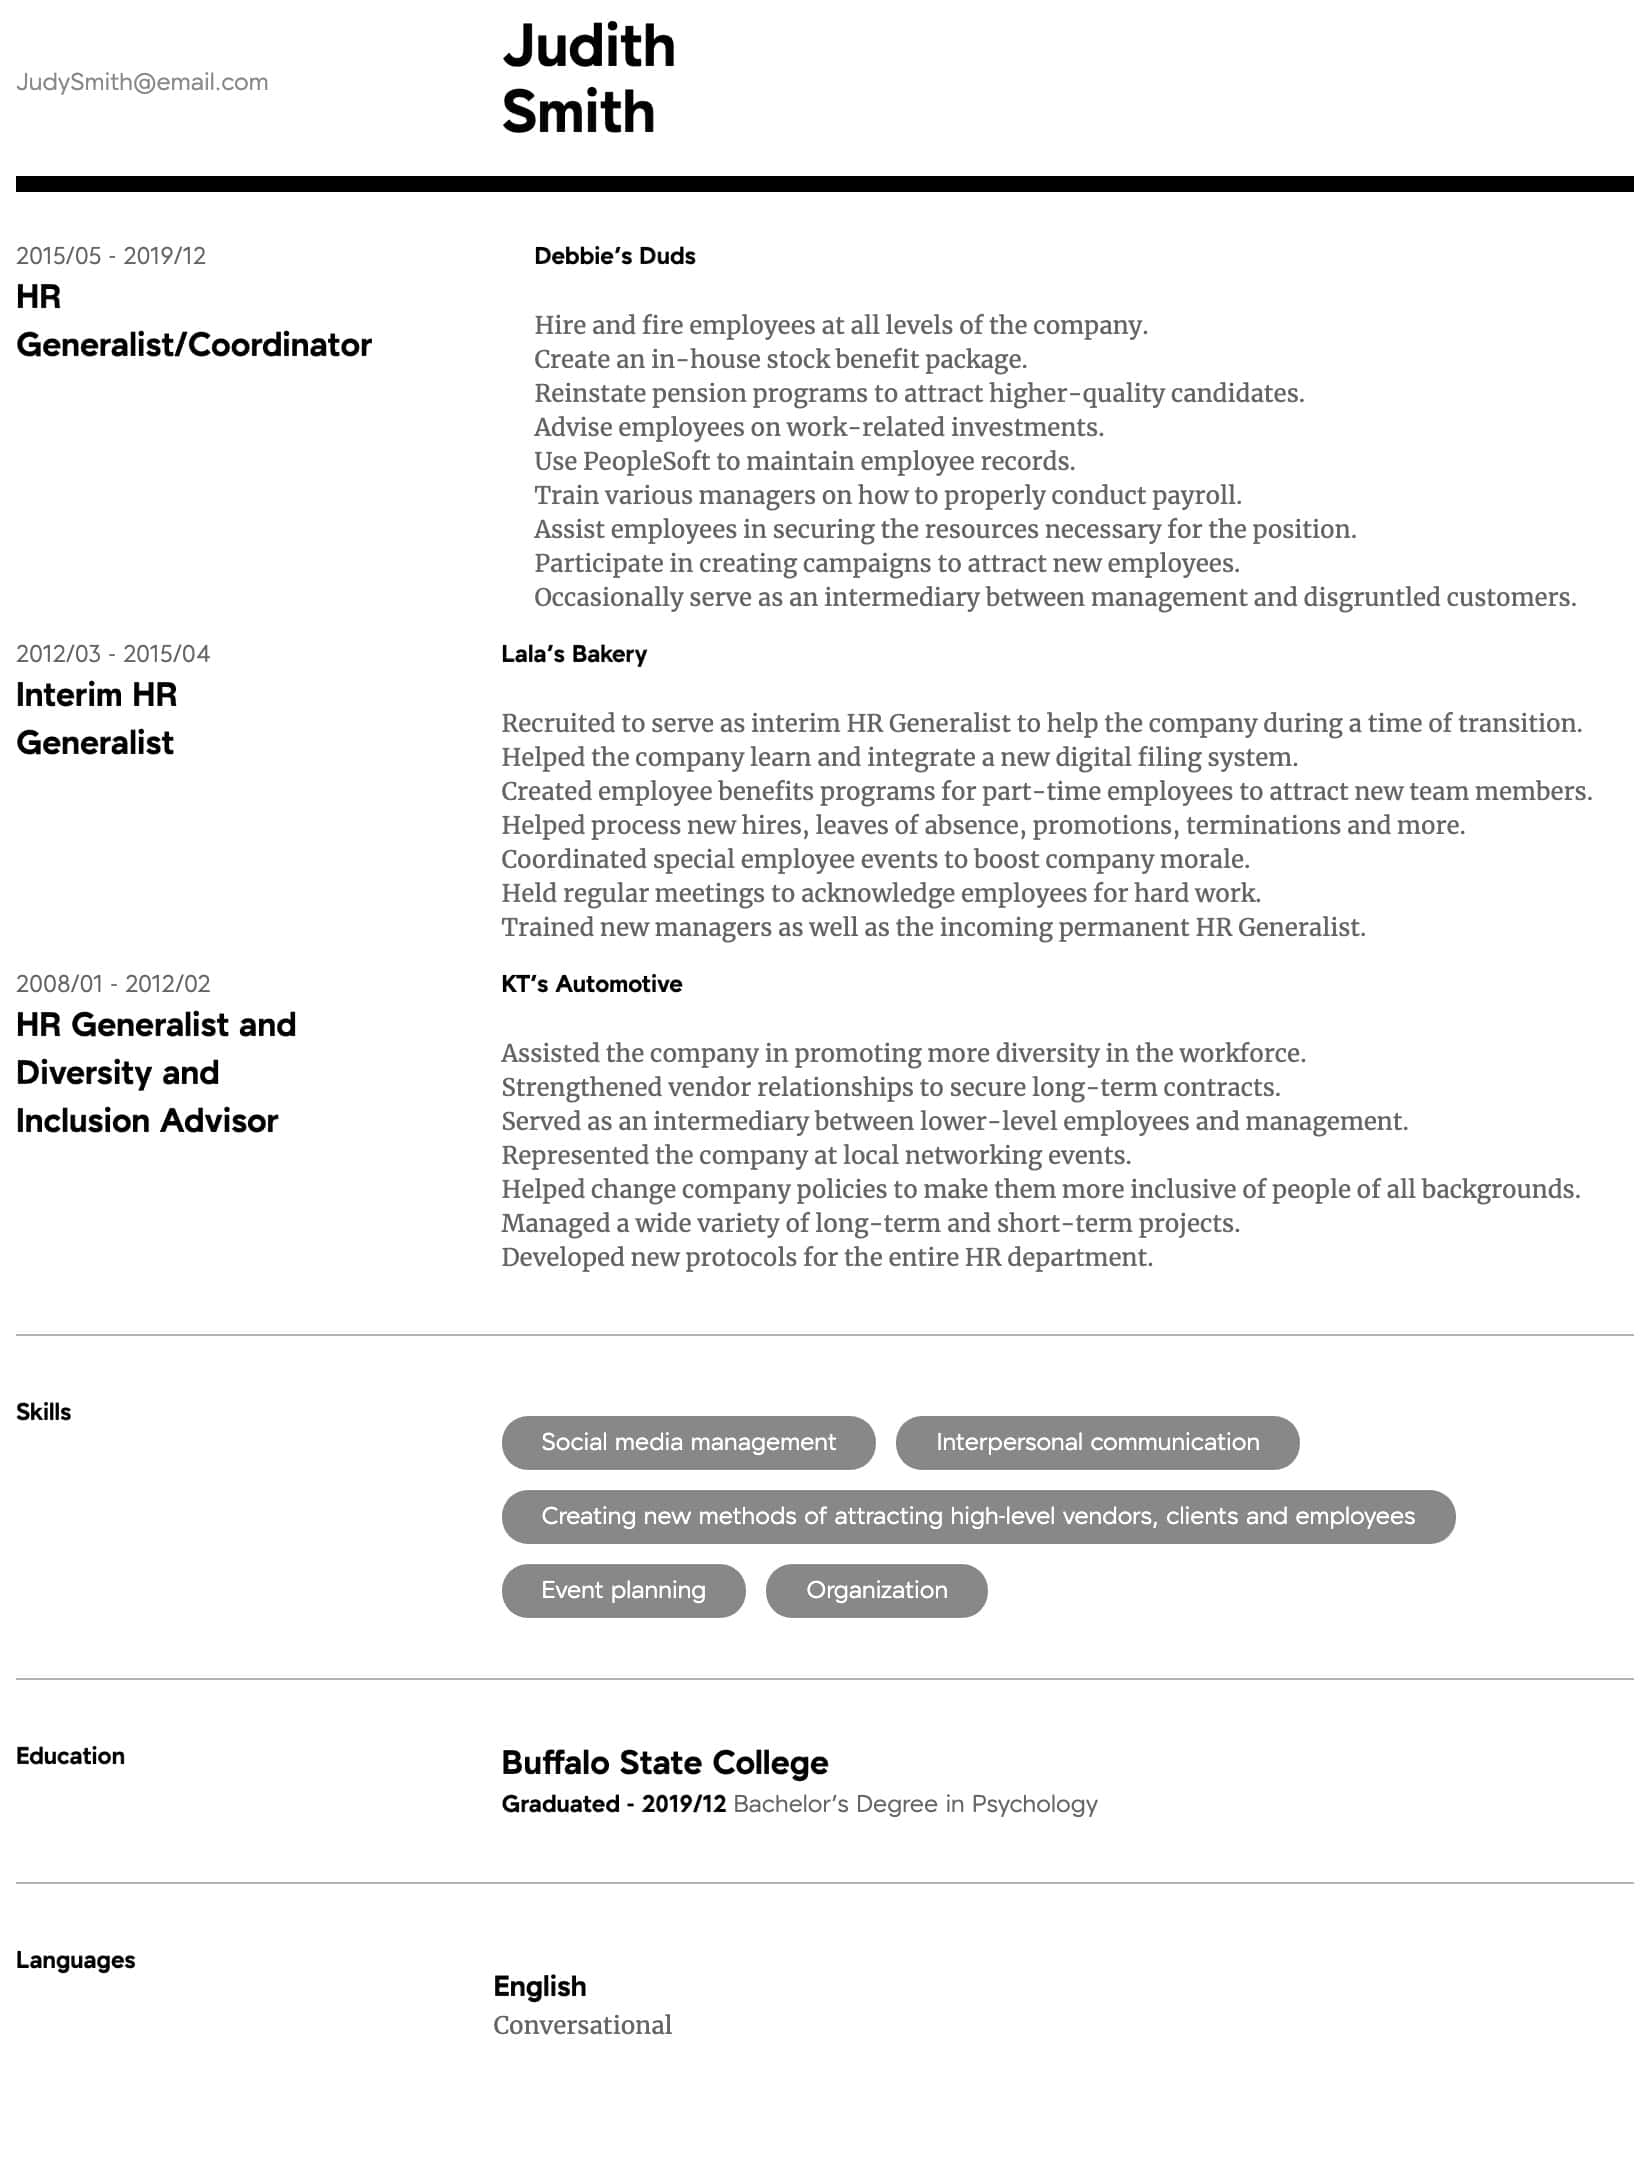 hr generalist resume samples all experience levels diversity manager intermediate process Resume Diversity Manager Resume